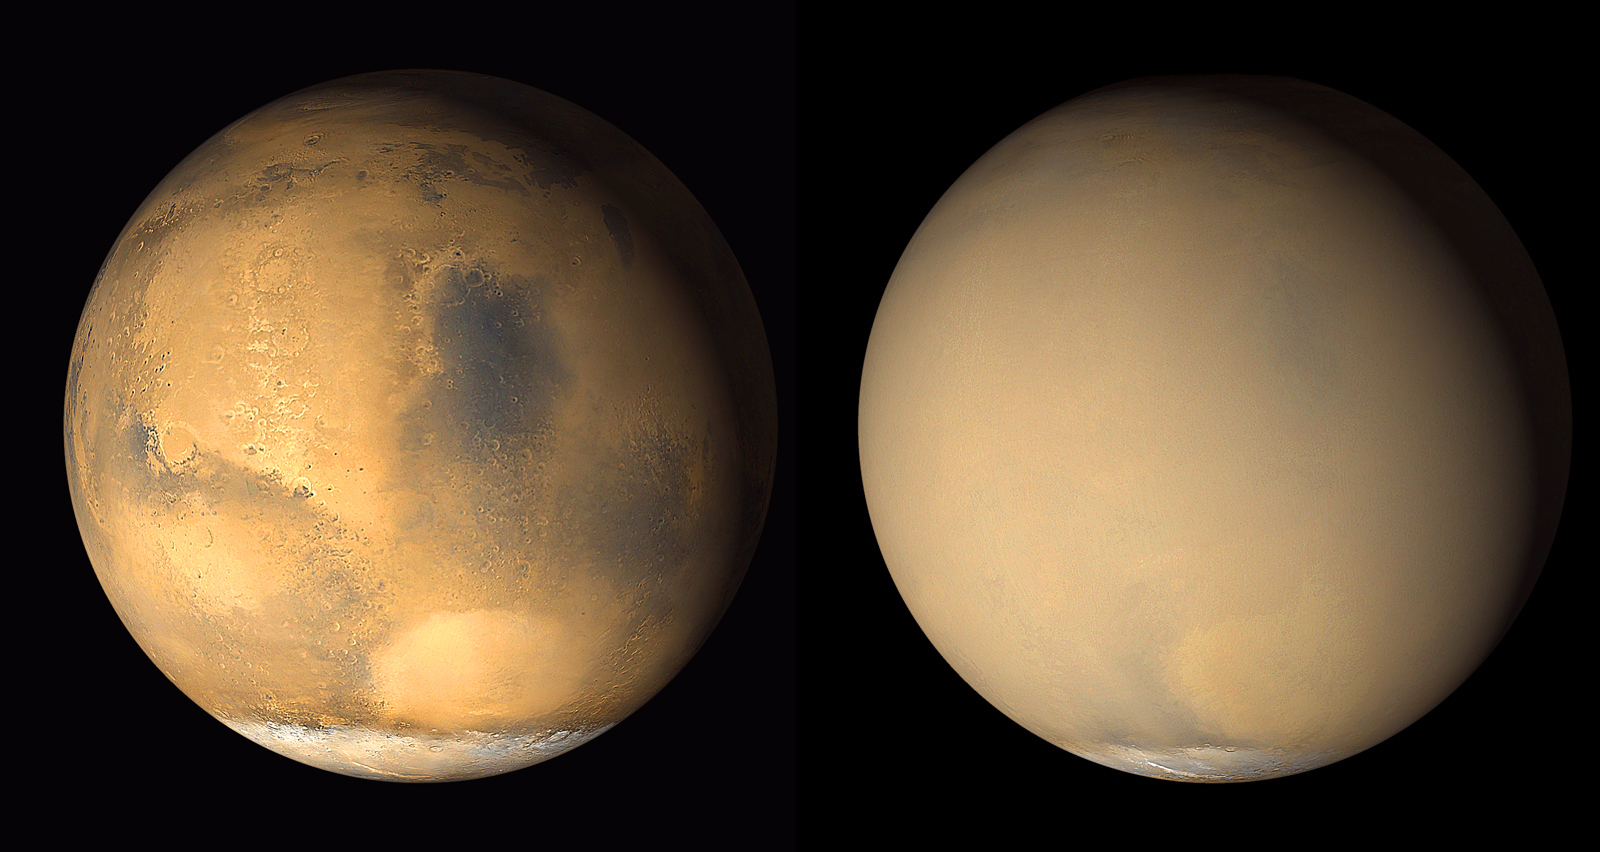 Two 2001 images from the Mars Orbiter Camera on NASA's Mars Global Surveyor orbiter show a dramatic change in the planet's appearance when haze raised by dust-storm activity in the south became globally distributed. The images were taken about a month apart. Image credit: NASA/JPL-Caltech/MSSS